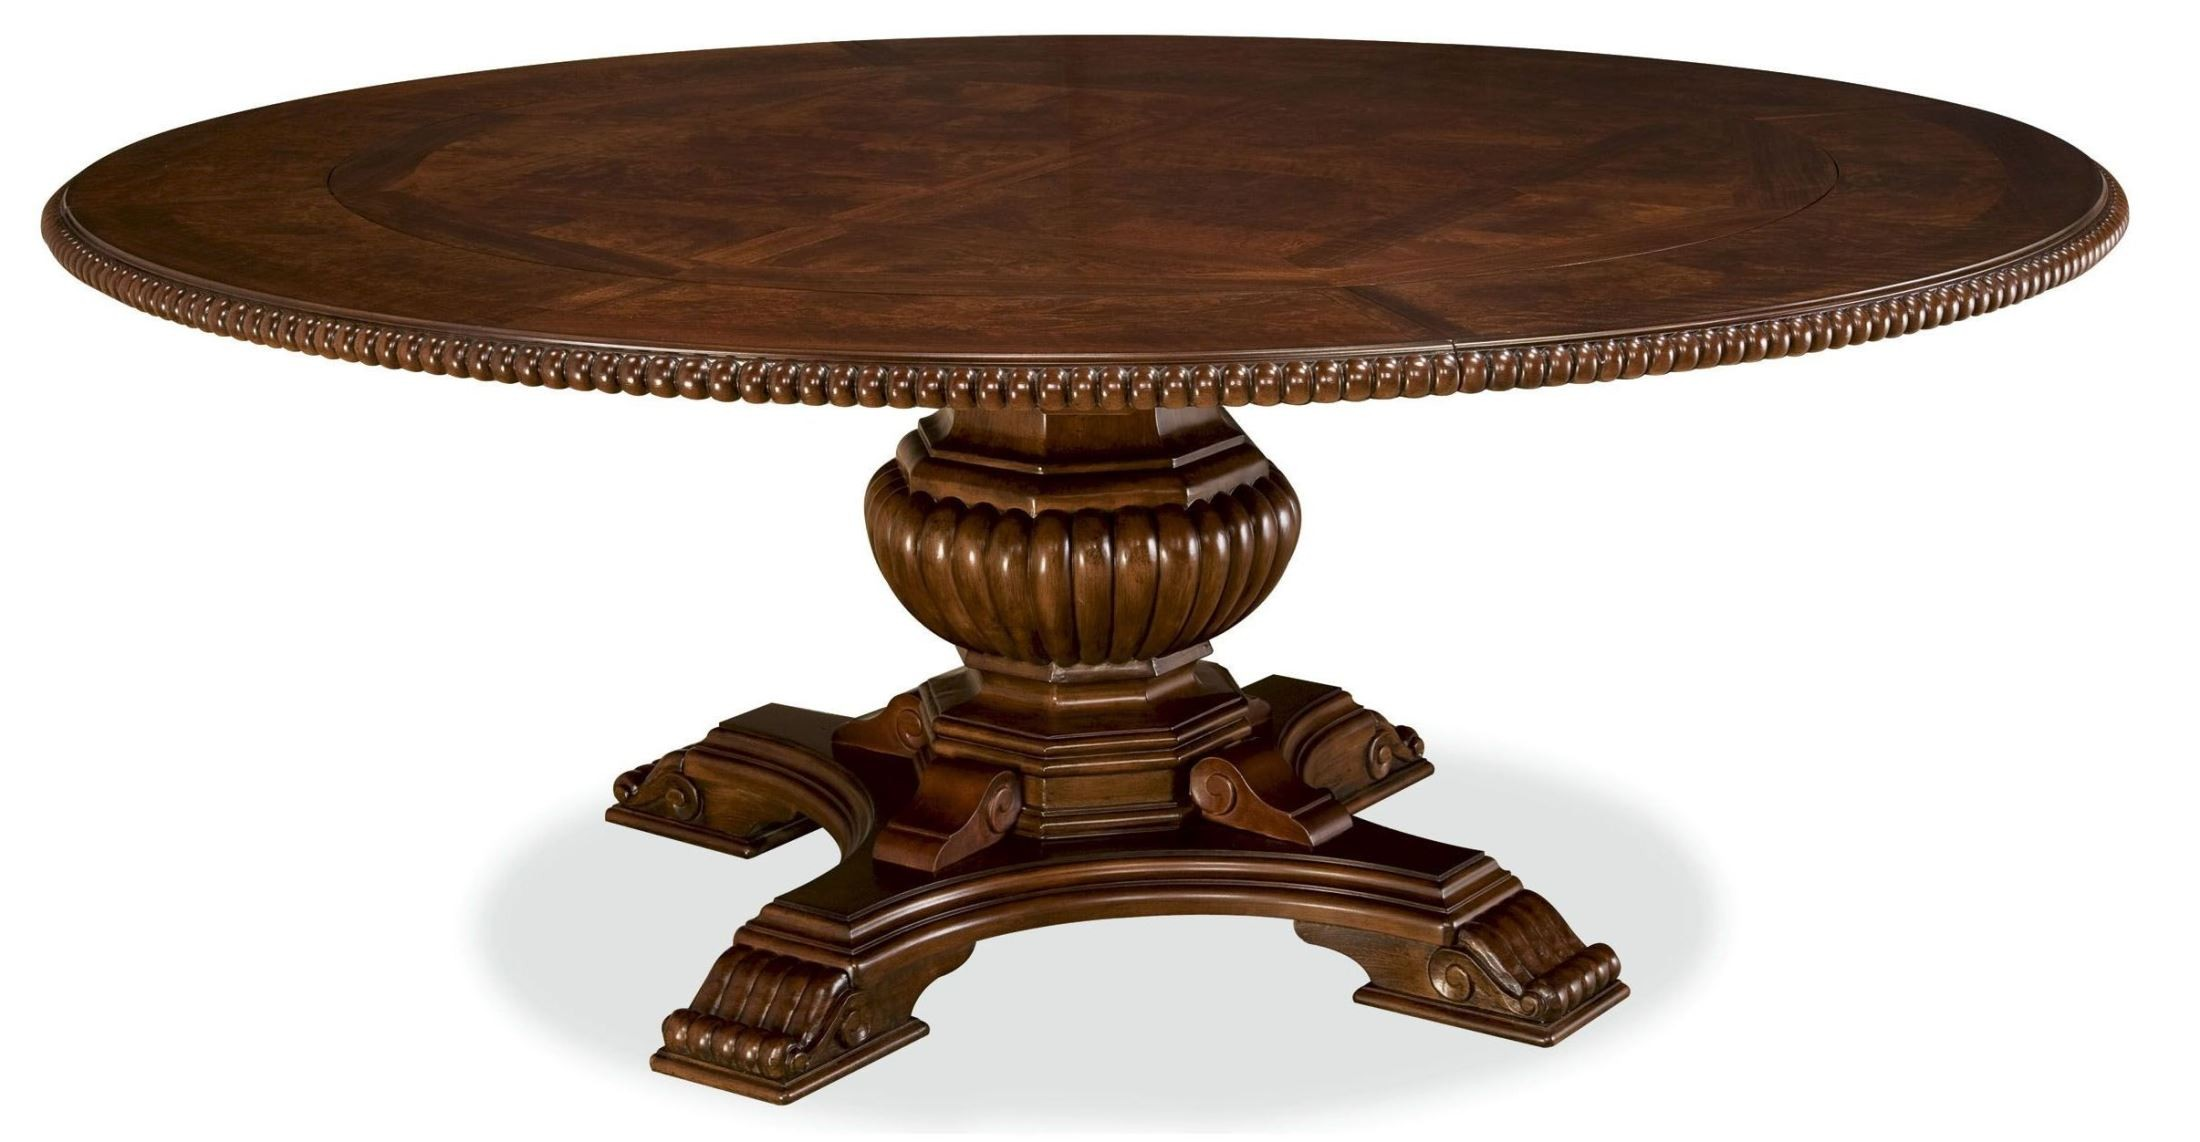 Villa Cortina Round Single Pedestal Extendable Dining Room Table From Univers